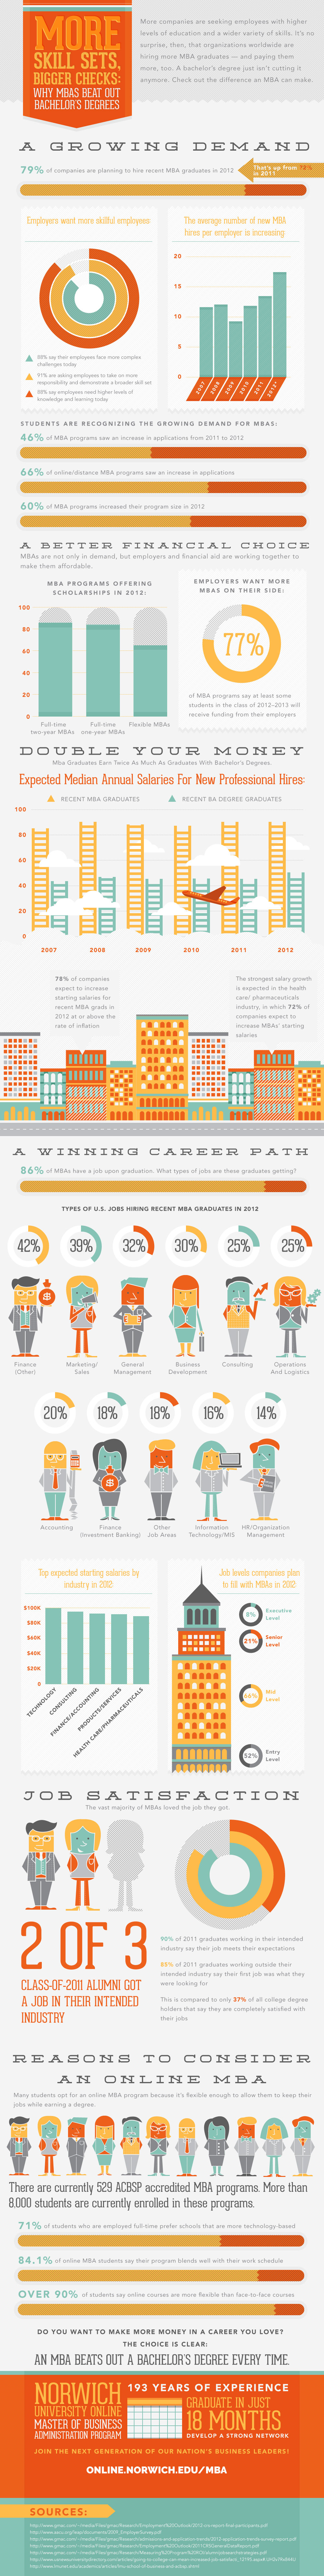 demand for mba graduates infographic